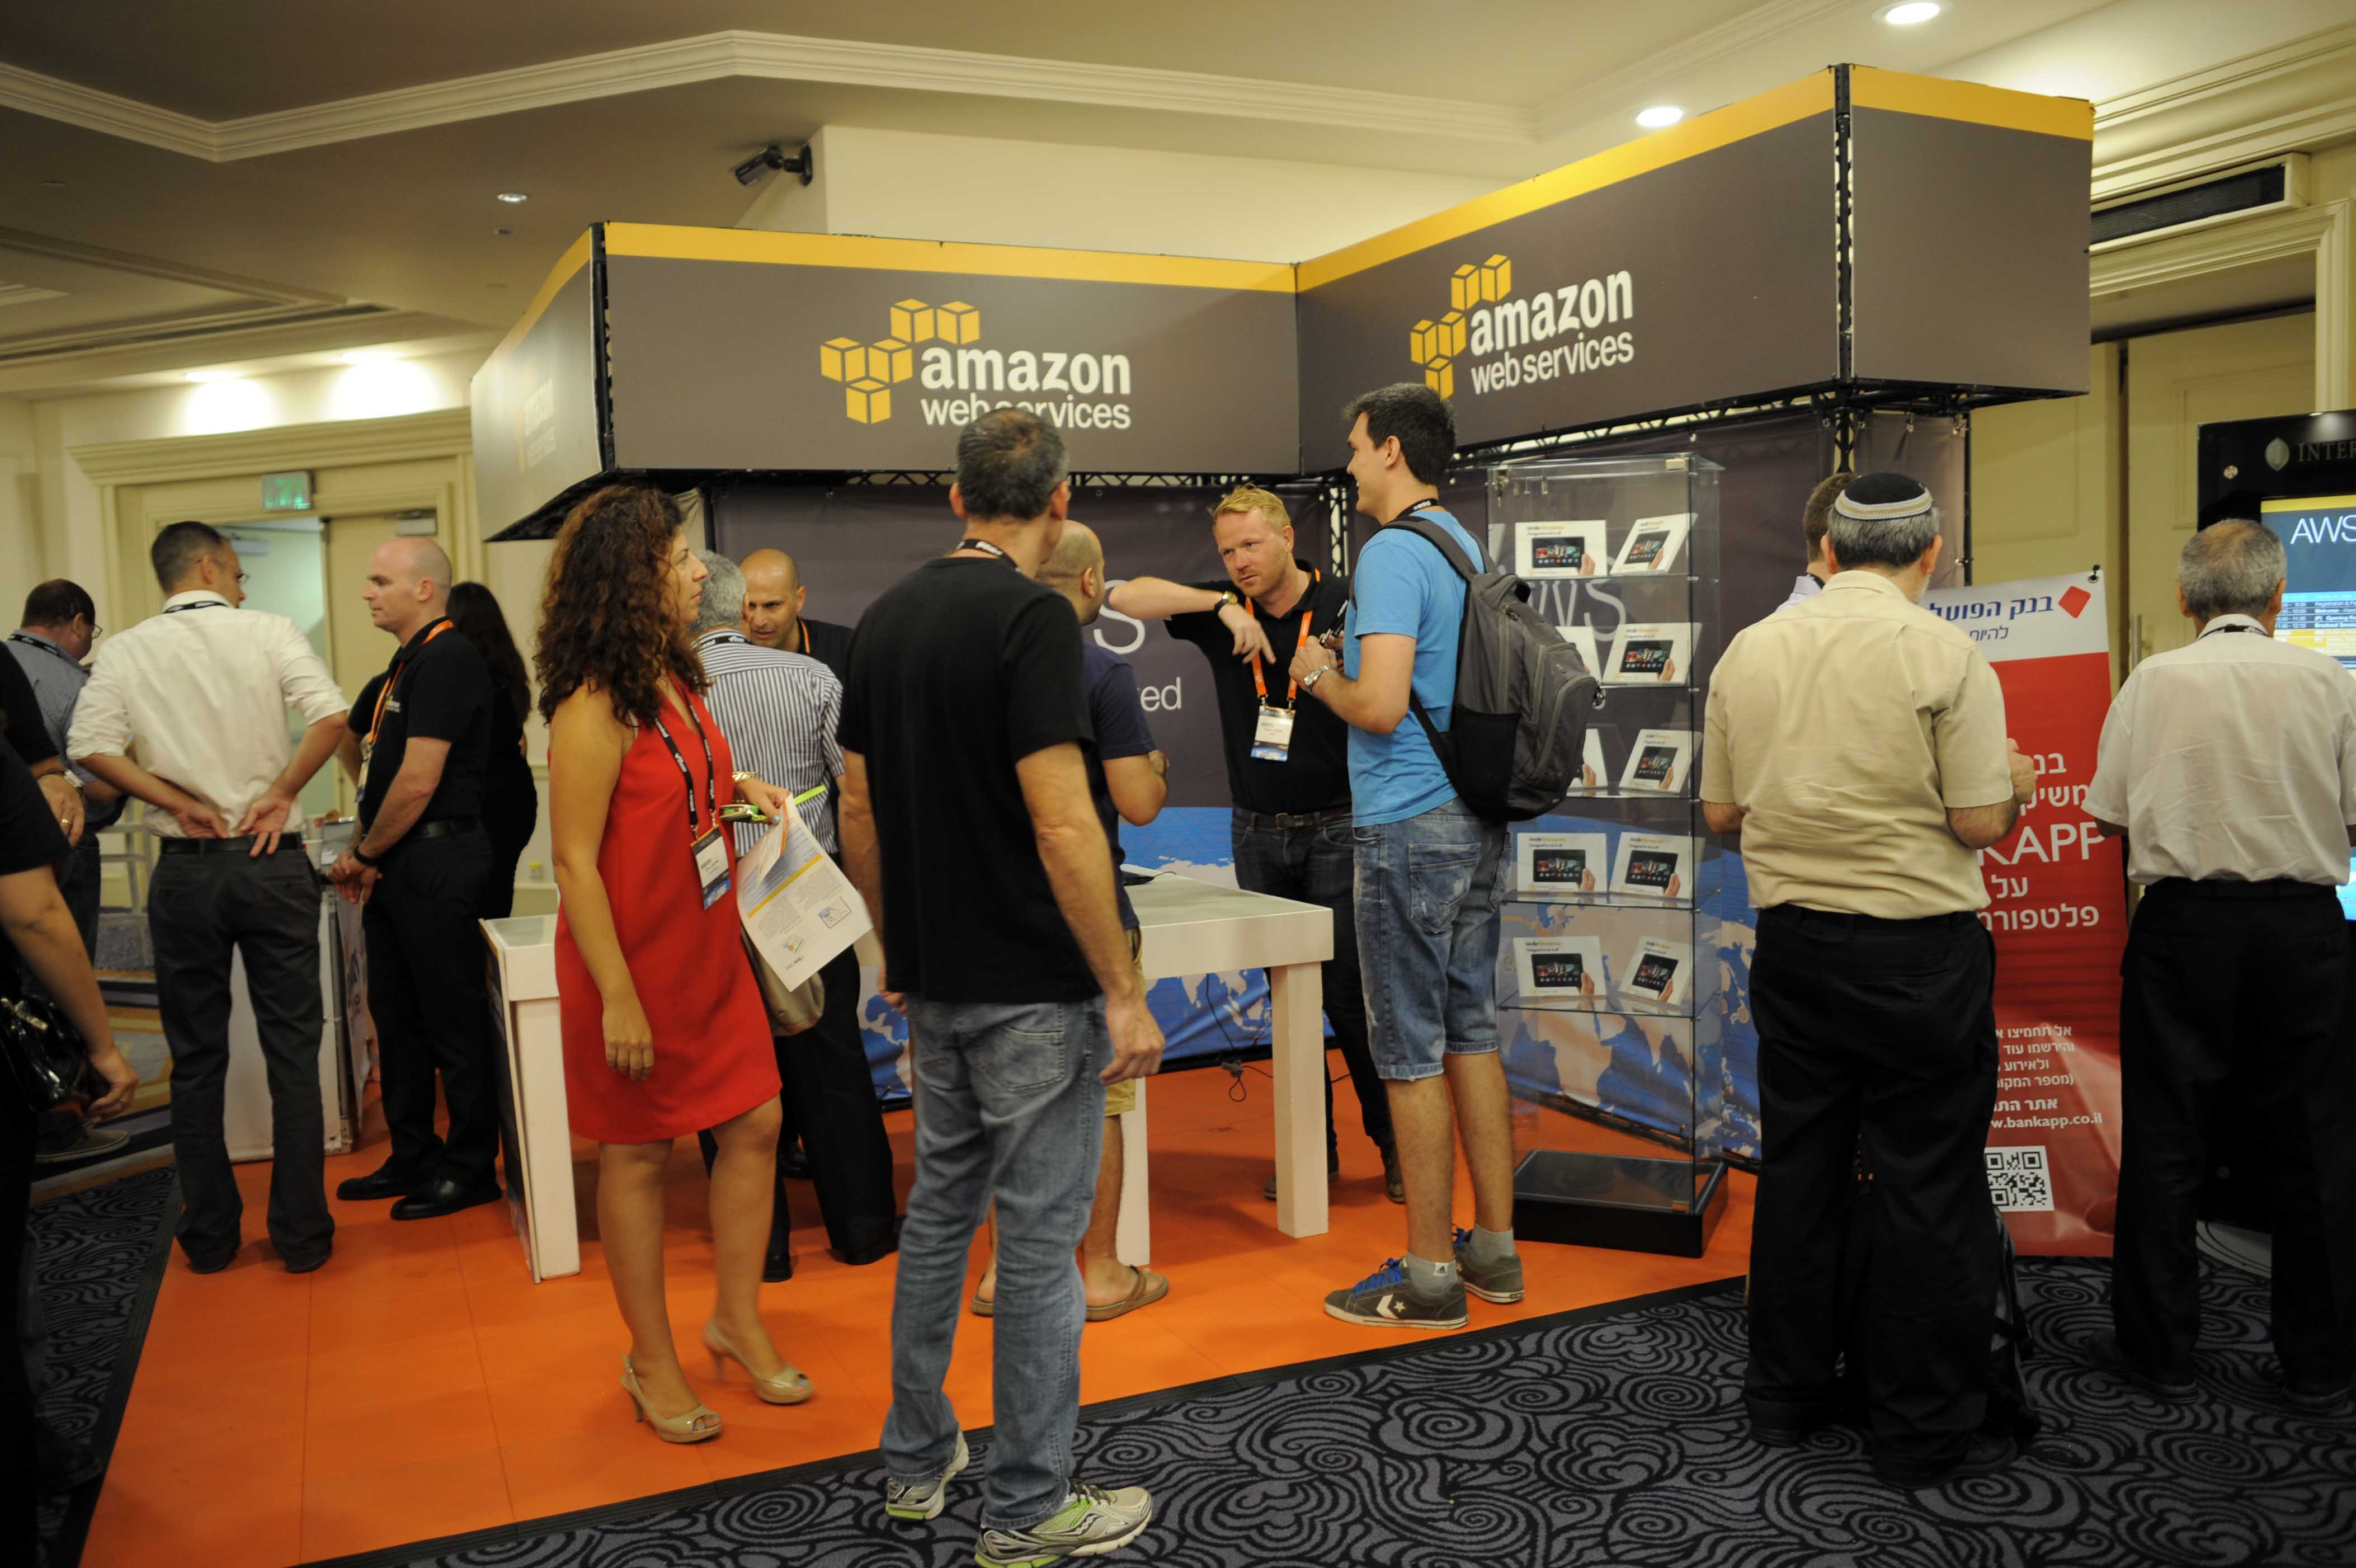 An Amazon Web Services booth at an event.